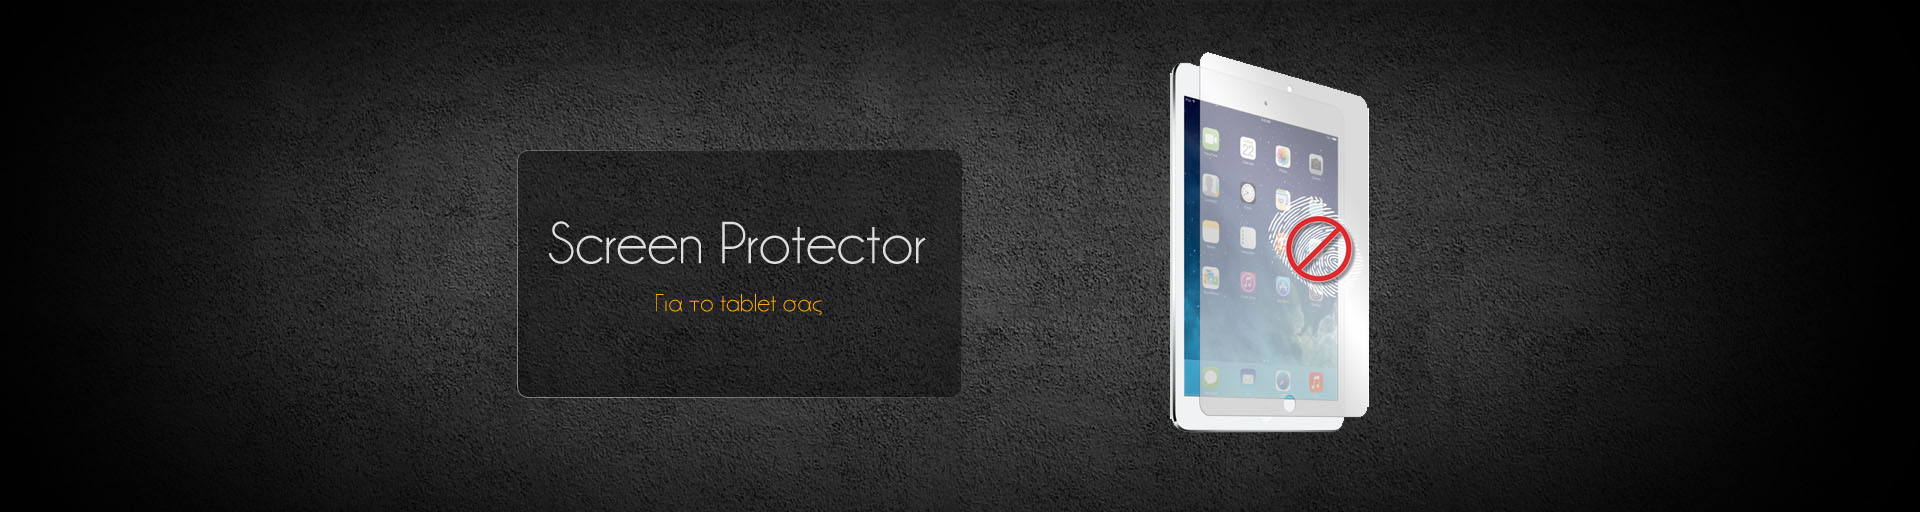 screen protector tablet